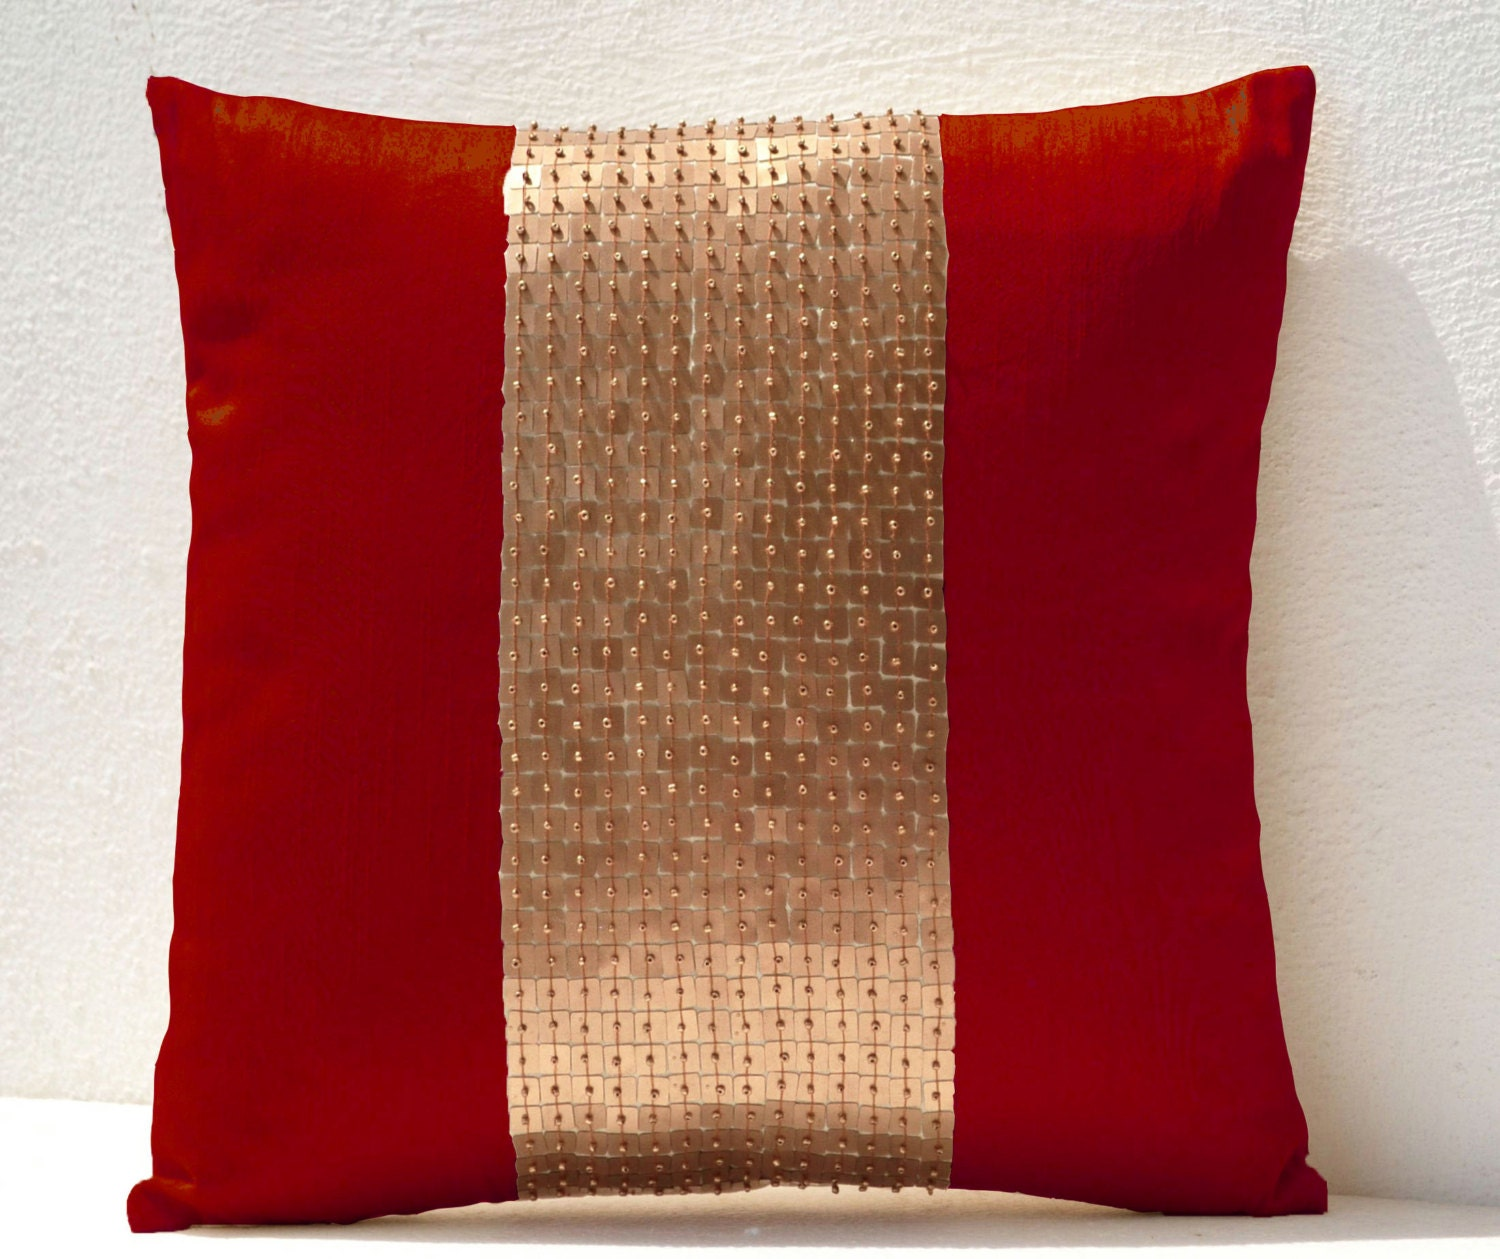 Throw Pillows Red And Gold : Throw Pillows Red gold color block in silk and by AmoreBeaute